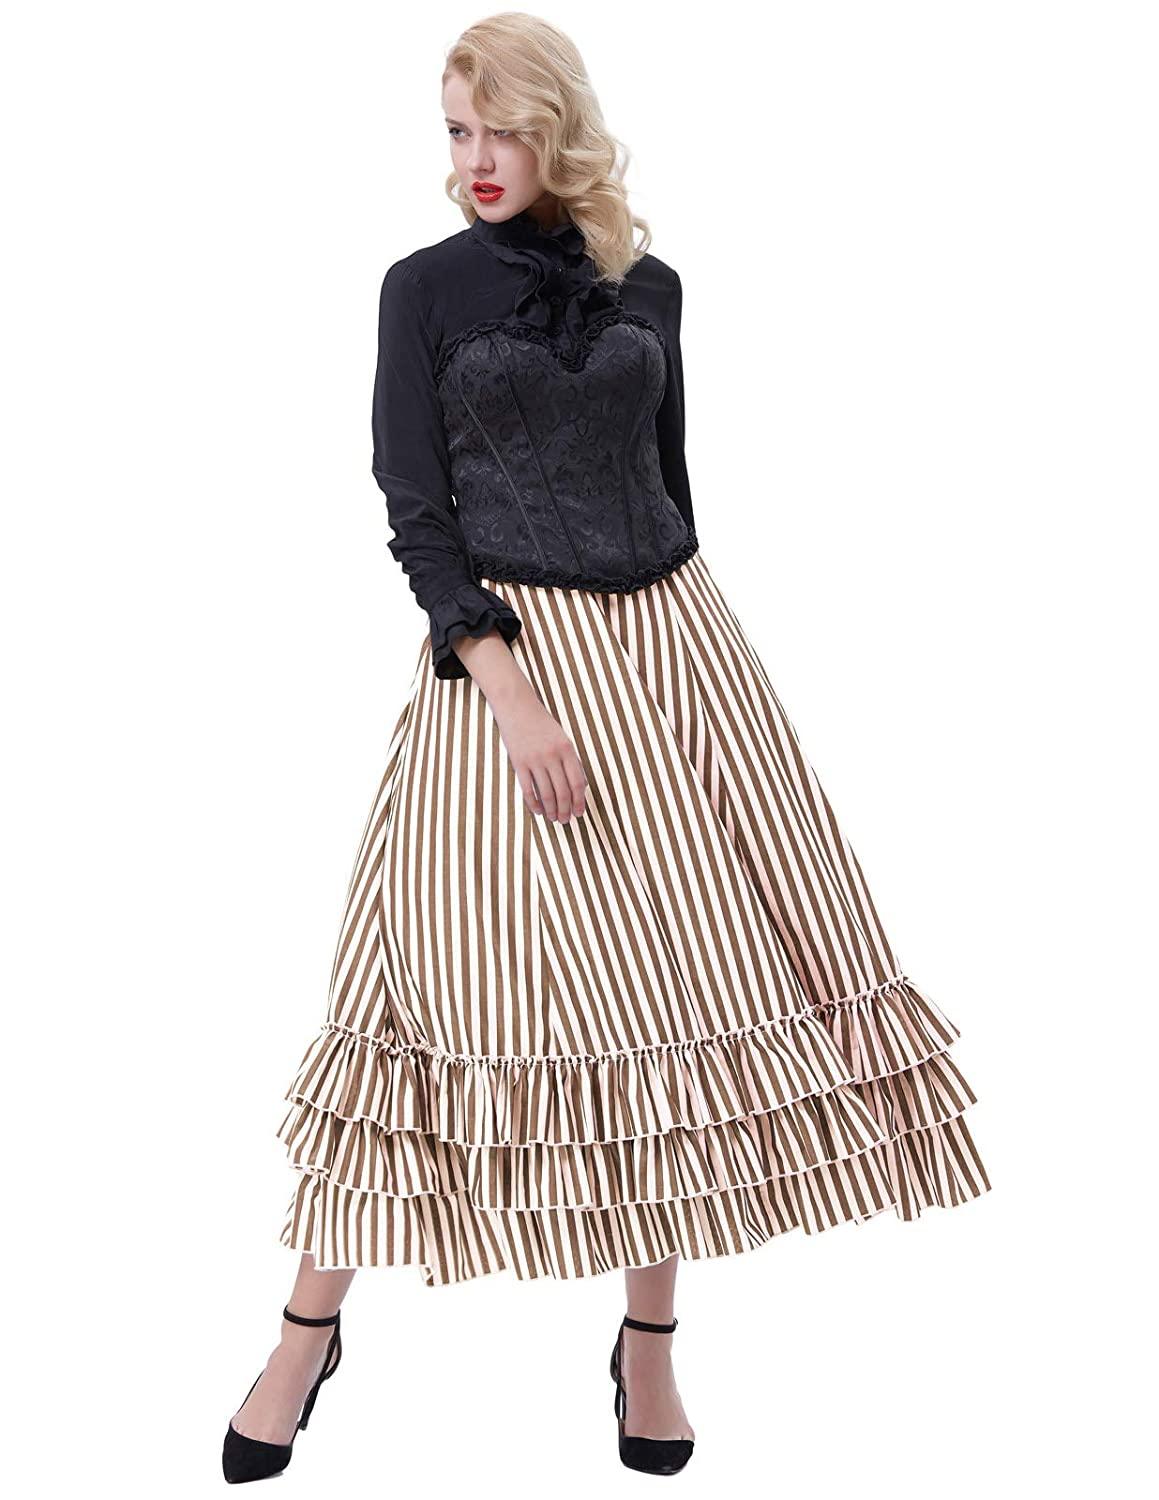 Steampunk Skirts | Bustle Skirts, Lace Skirts, Ruffle Skirts Belle Poque Womens Vintage Stripes Gothic Victorian Skirt Renaissance Style Falda $37.99 AT vintagedancer.com